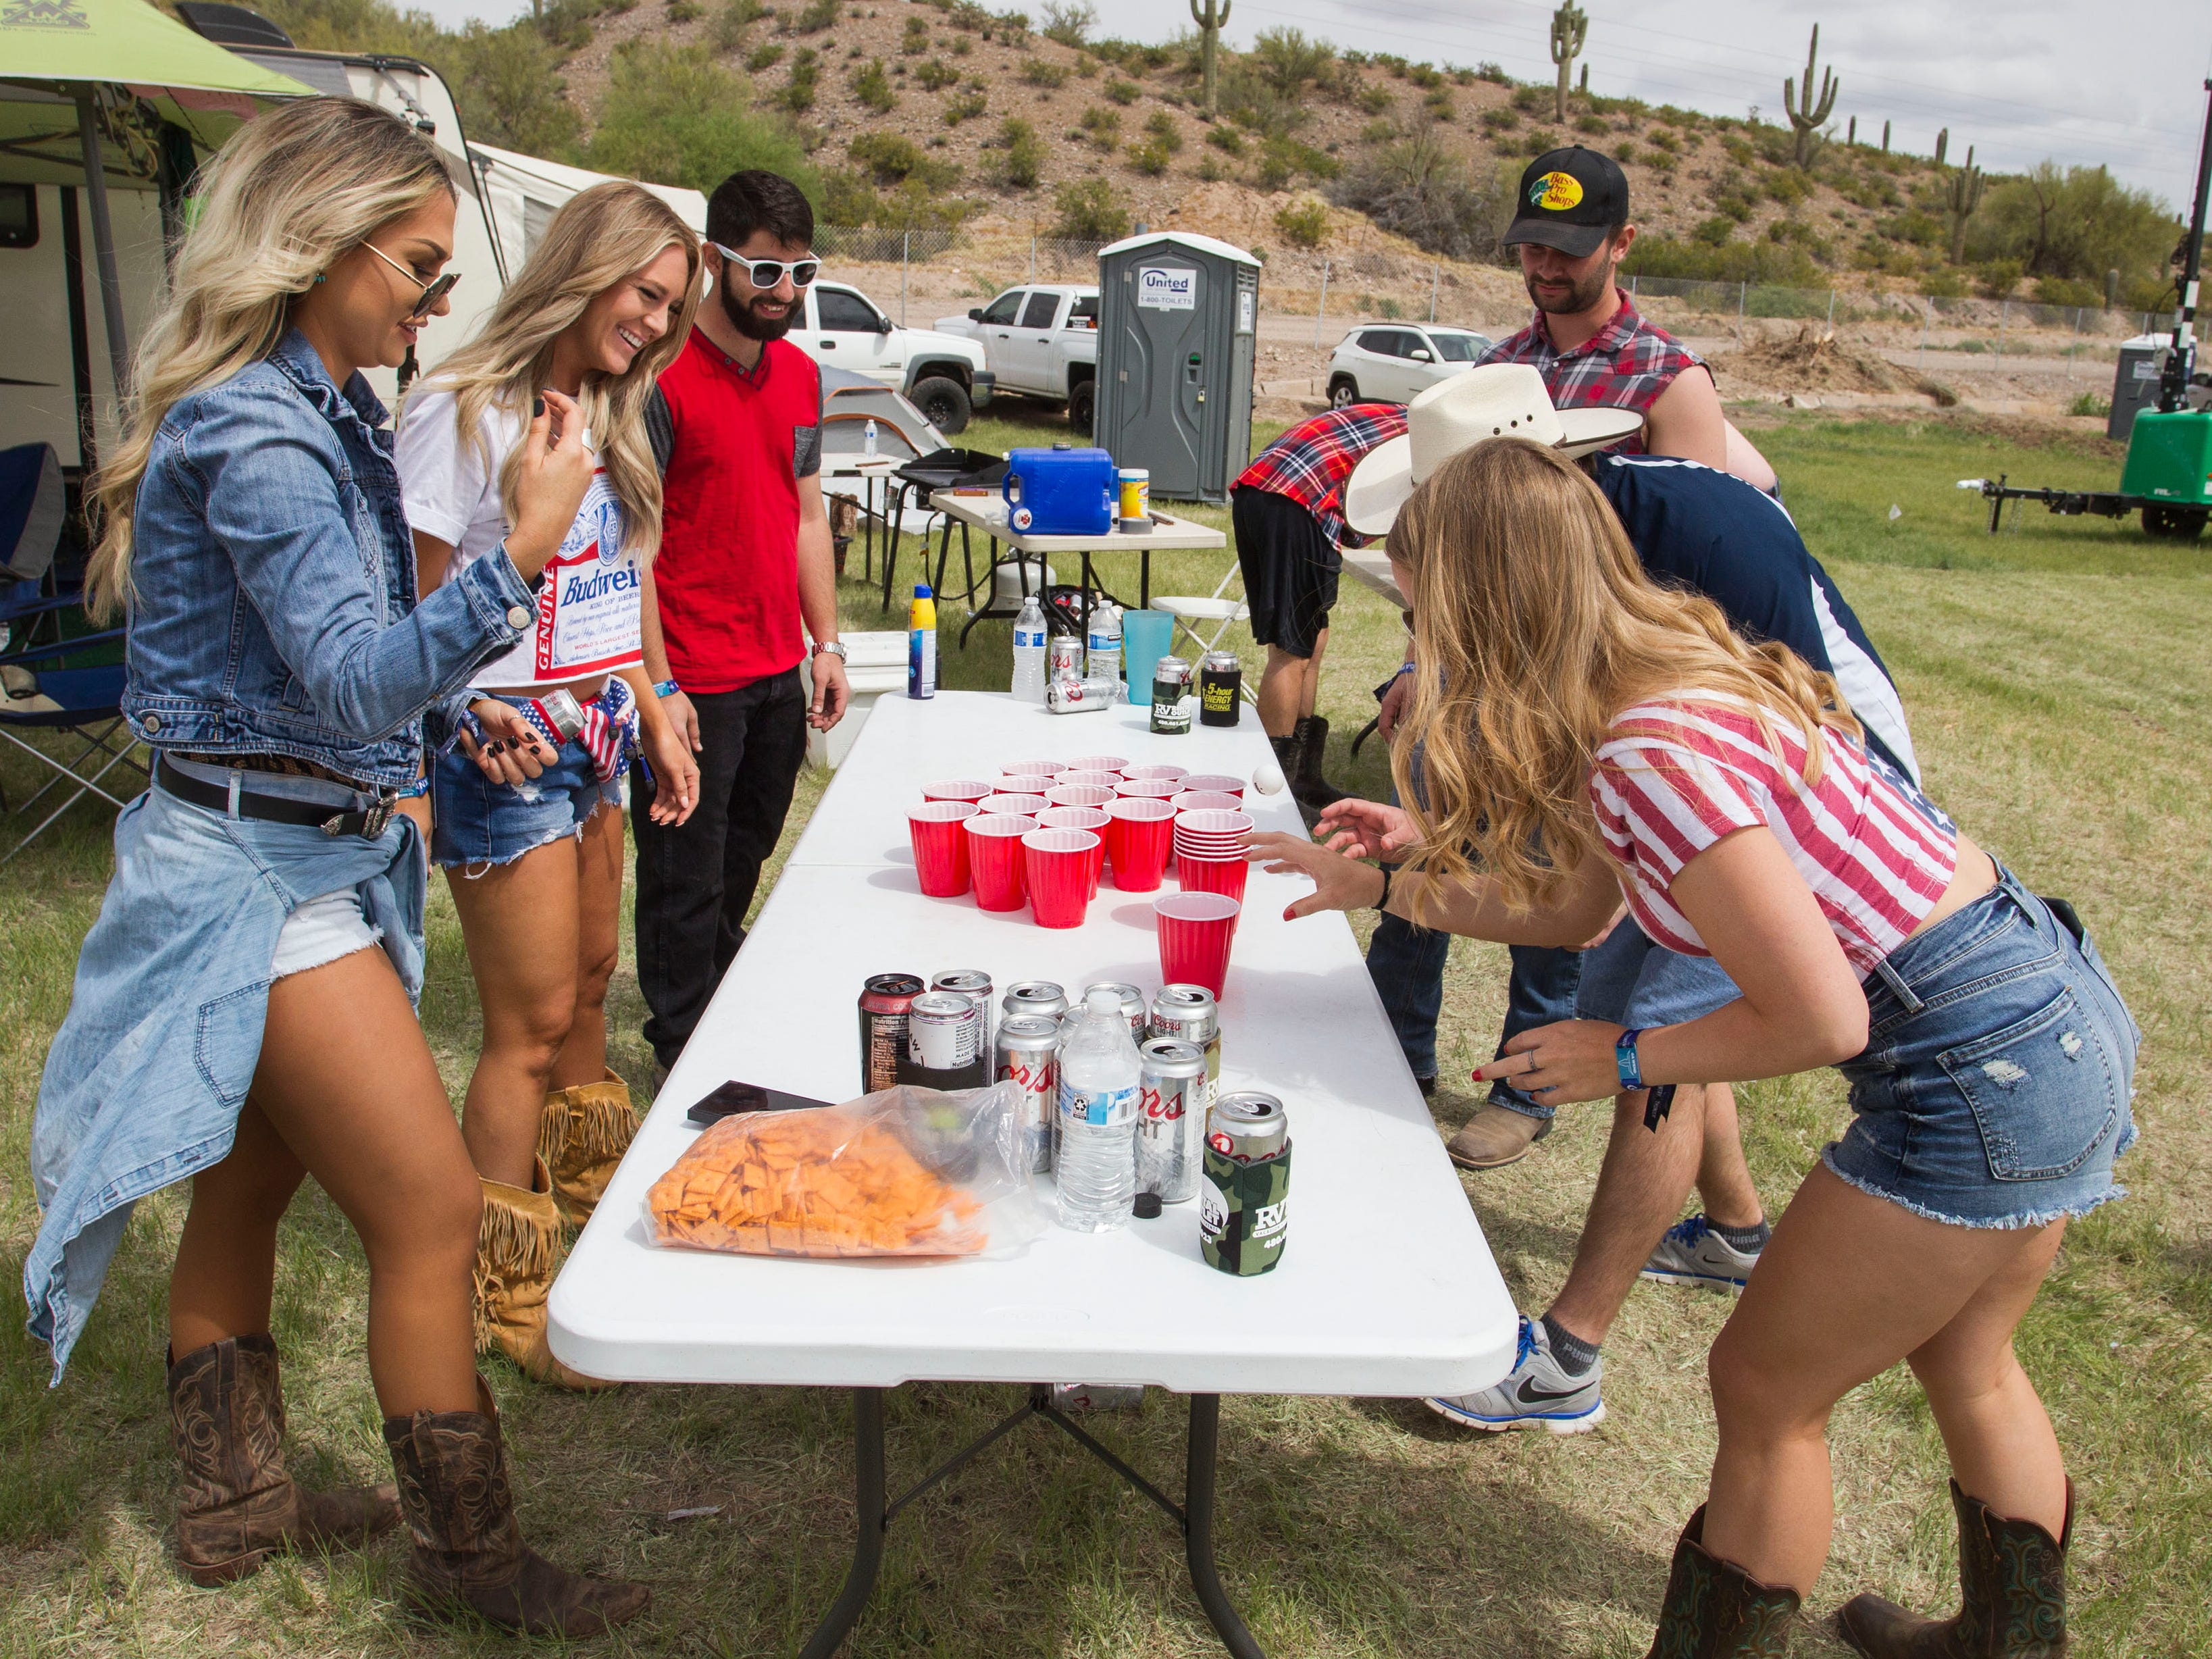 Beer pong for breakfast was a favorite during Country Thunder Arizona on April 12, 2019, in Florence, Ariz.